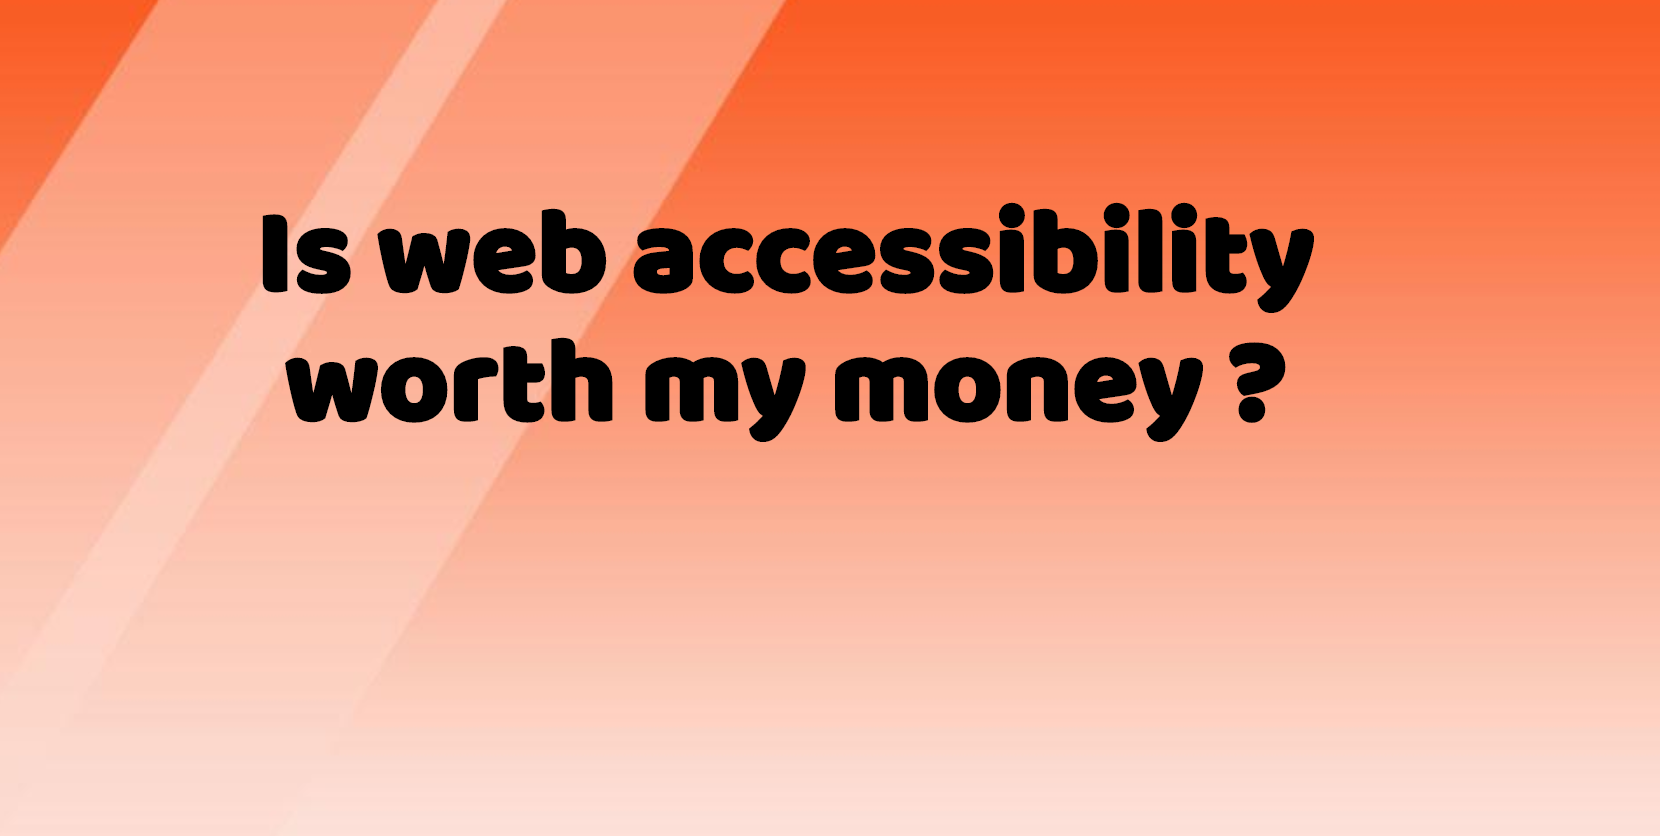 Is web accessibility worth my money?